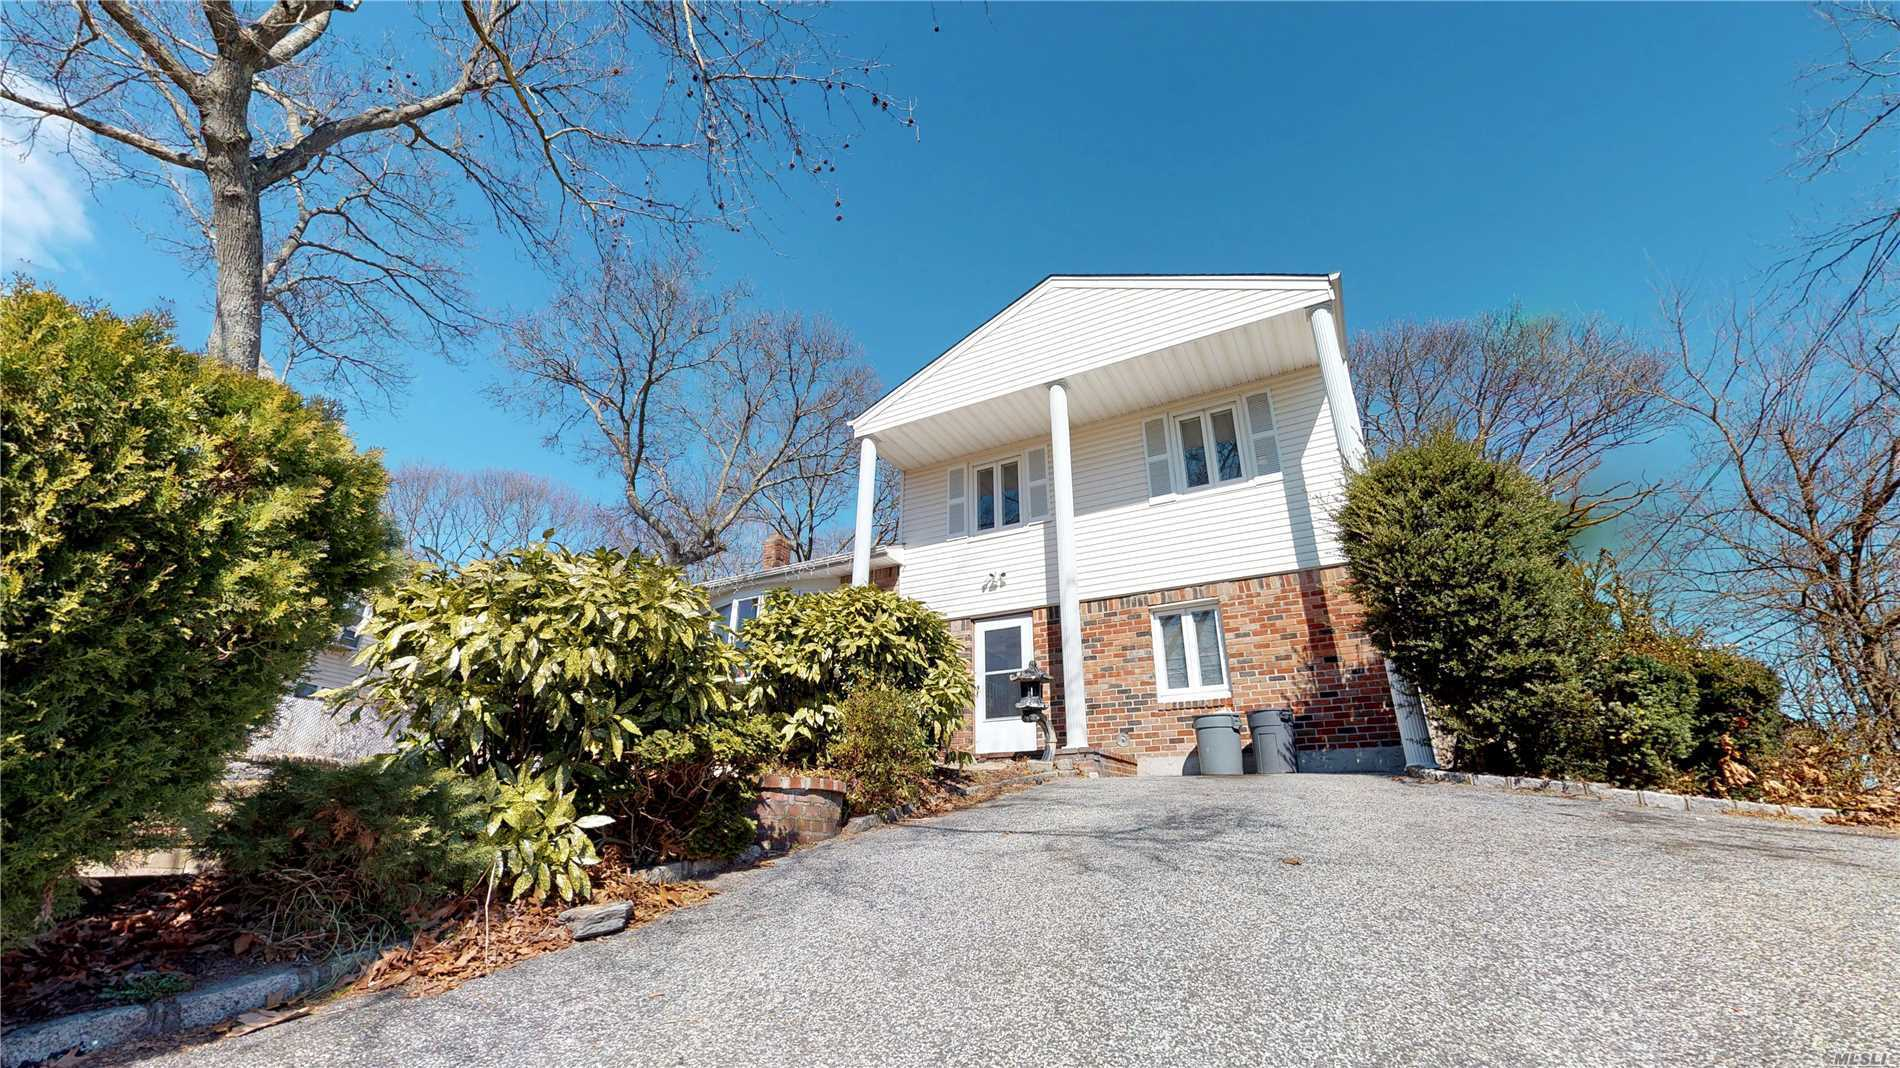 Large family home w/legal apt.w/SE, 5 yrs roof, vinly siding, granite kit.w/ss applances, fresh paintnstain wood floors, large brs, conviently located near shopping, lie, lirr,